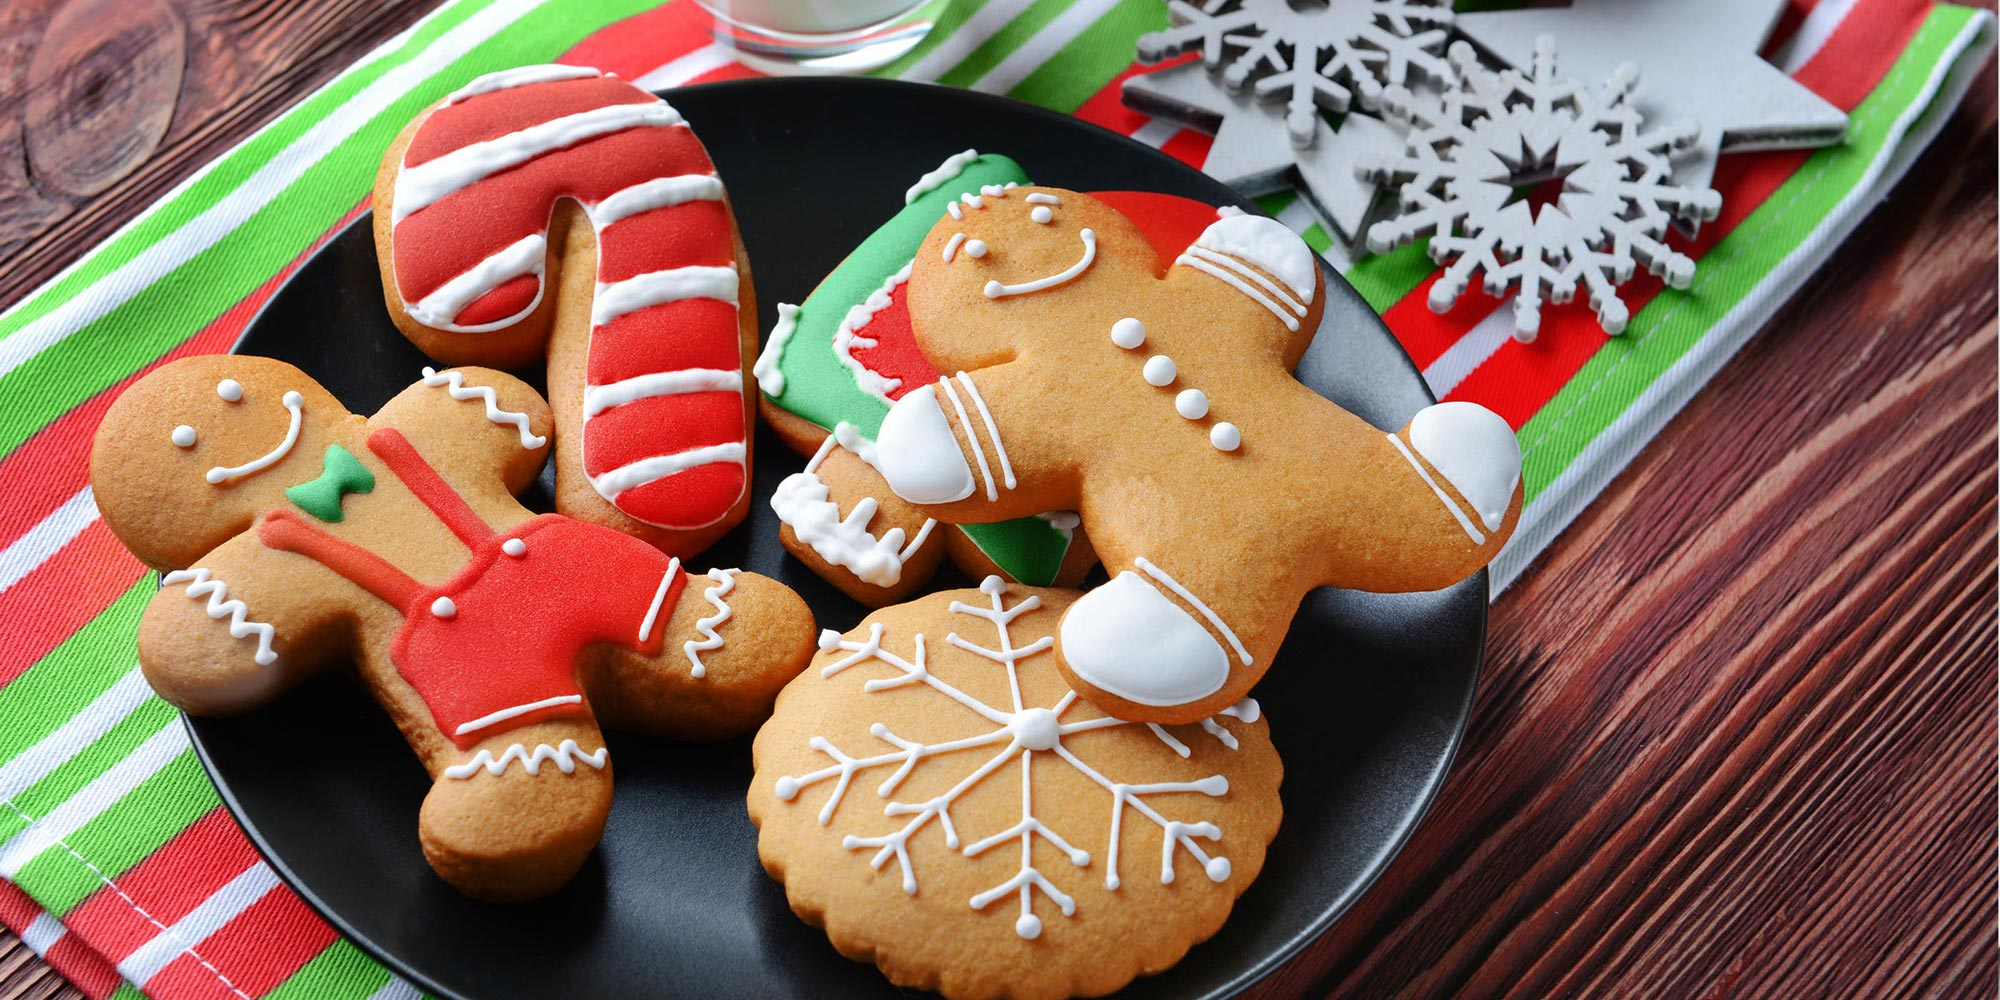 Gingerbread Cookies Recipe No Calorie Sweetener Sugar Substitute Splenda Sweeteners